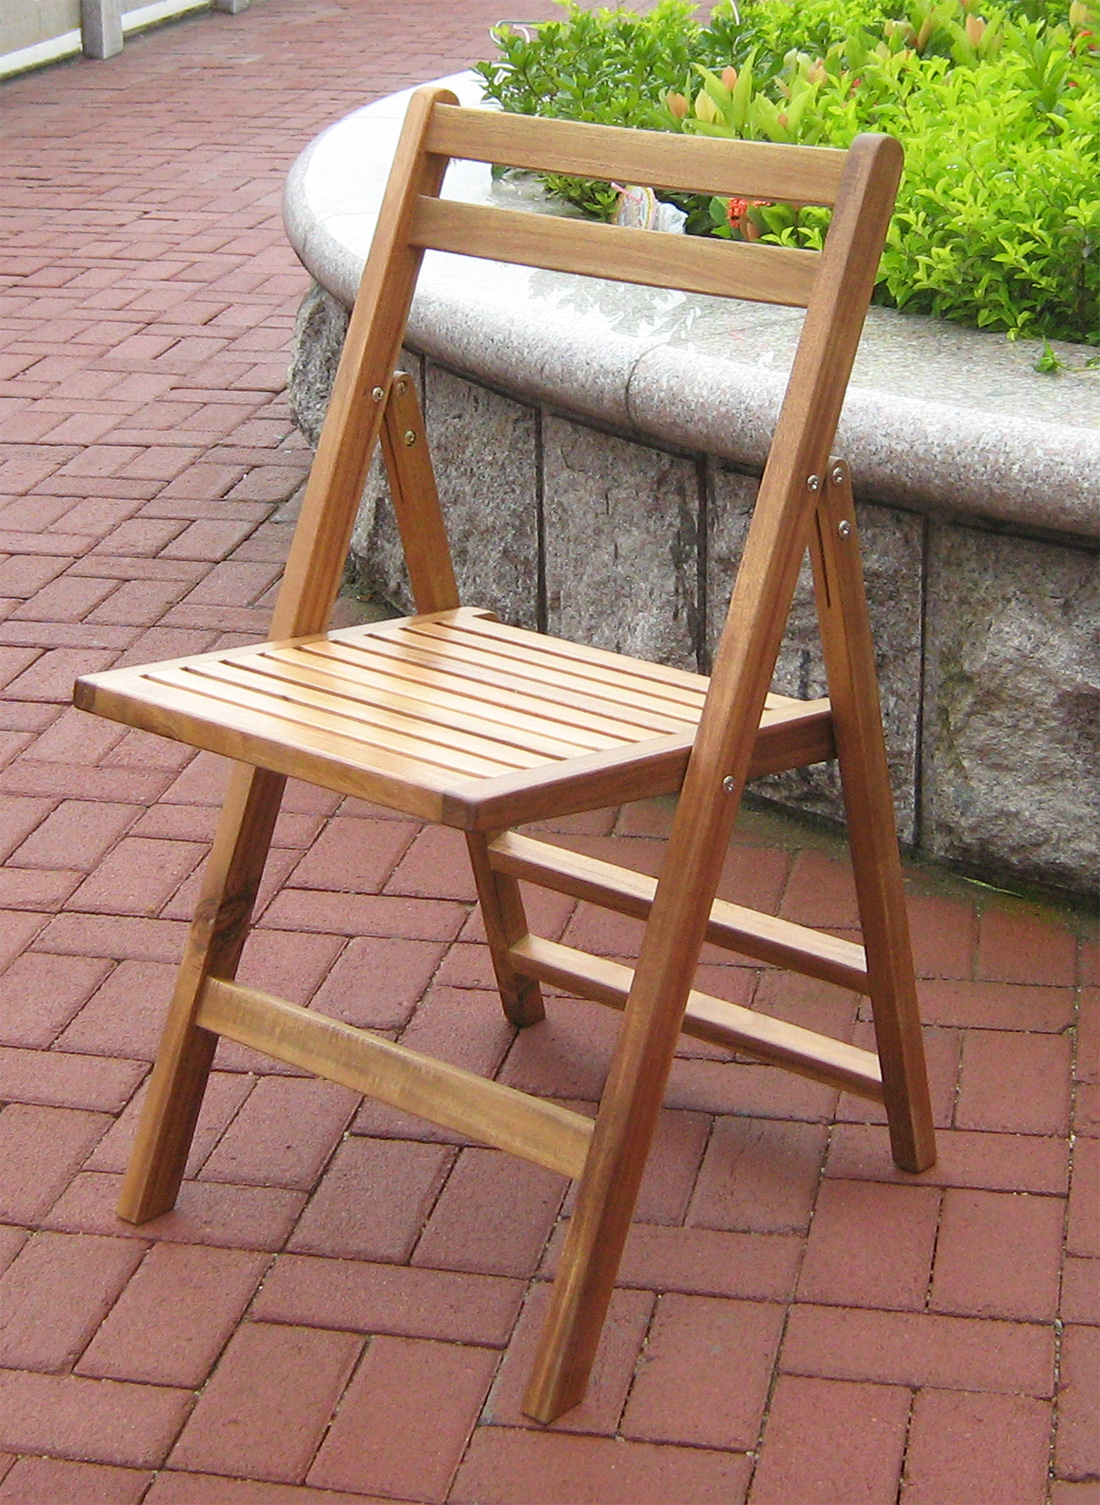 Merry Products MPG-TBS01-CH Outdoor Folding Chairs- Wood